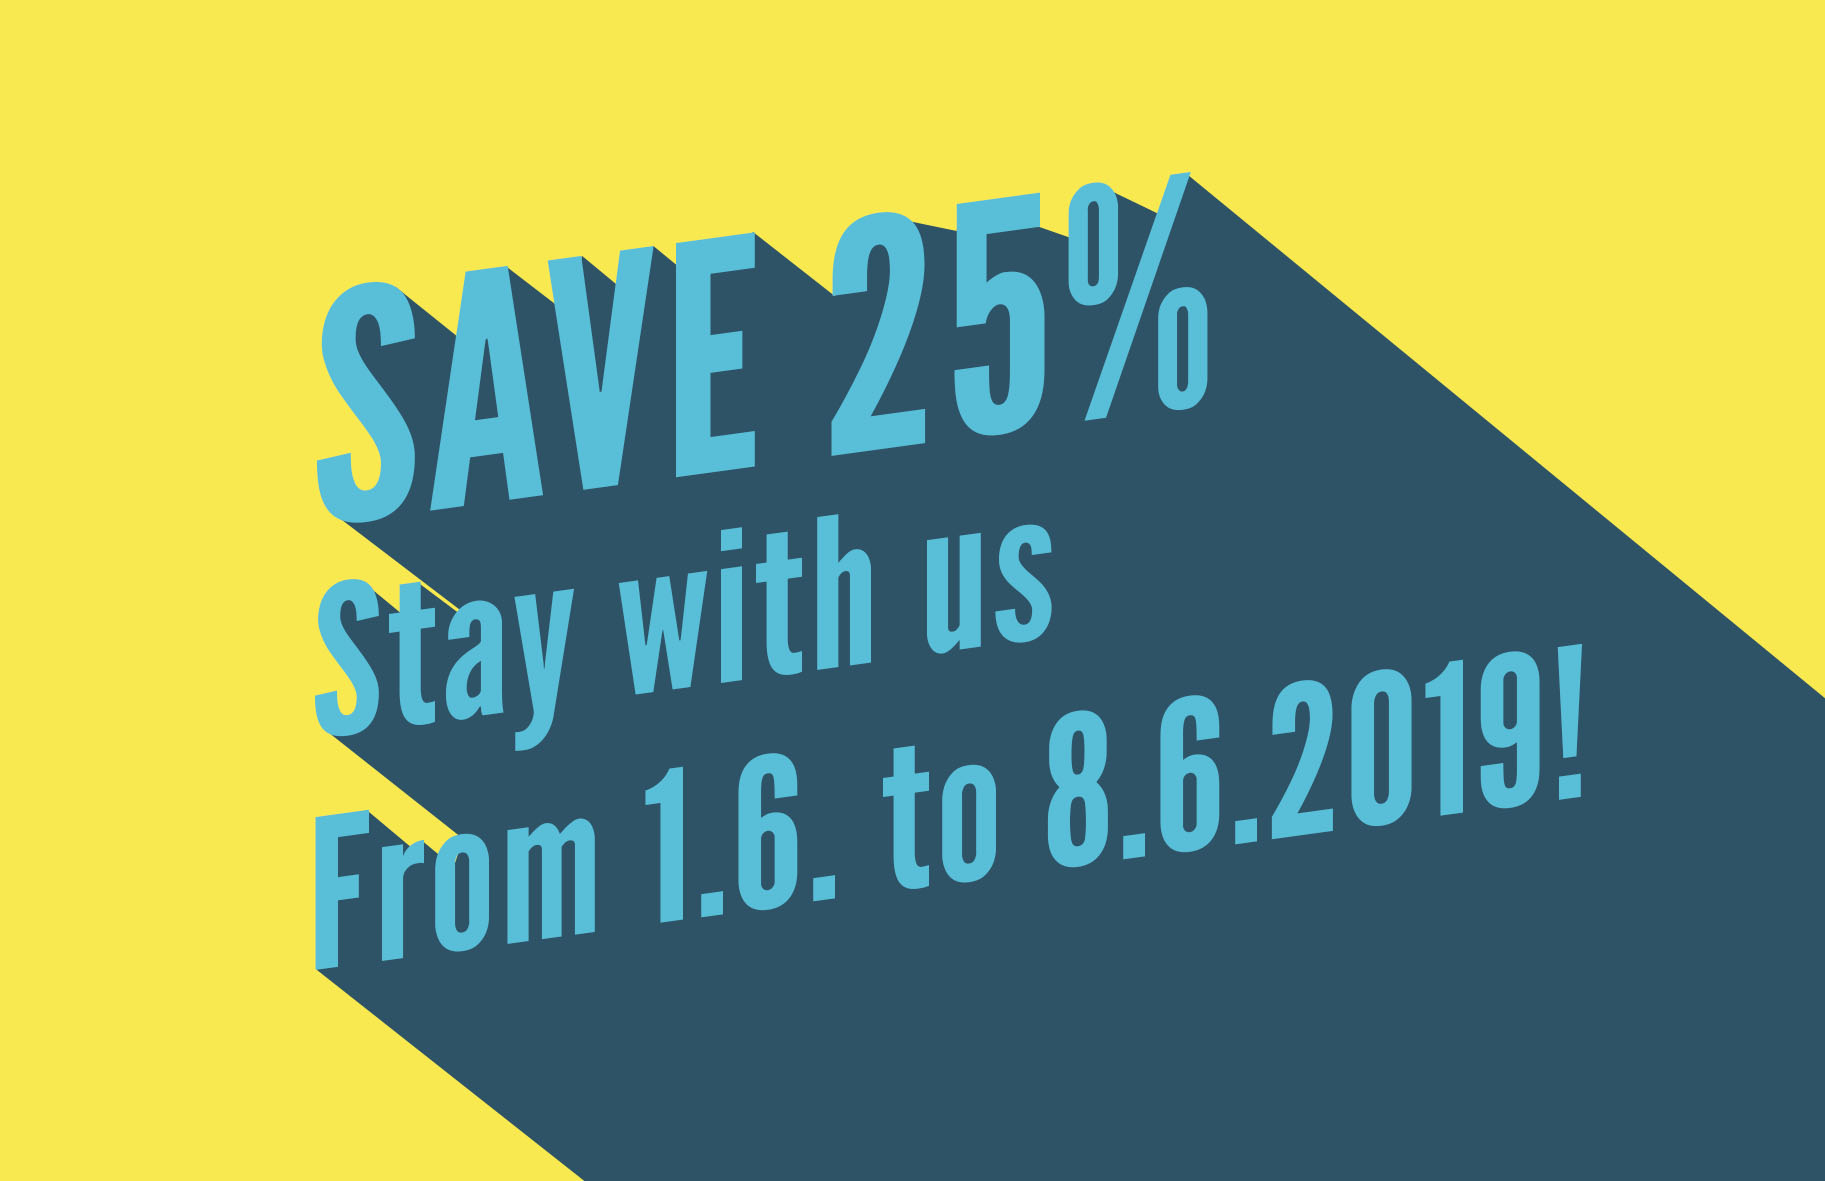 SAVE 25% stay with us.jpg